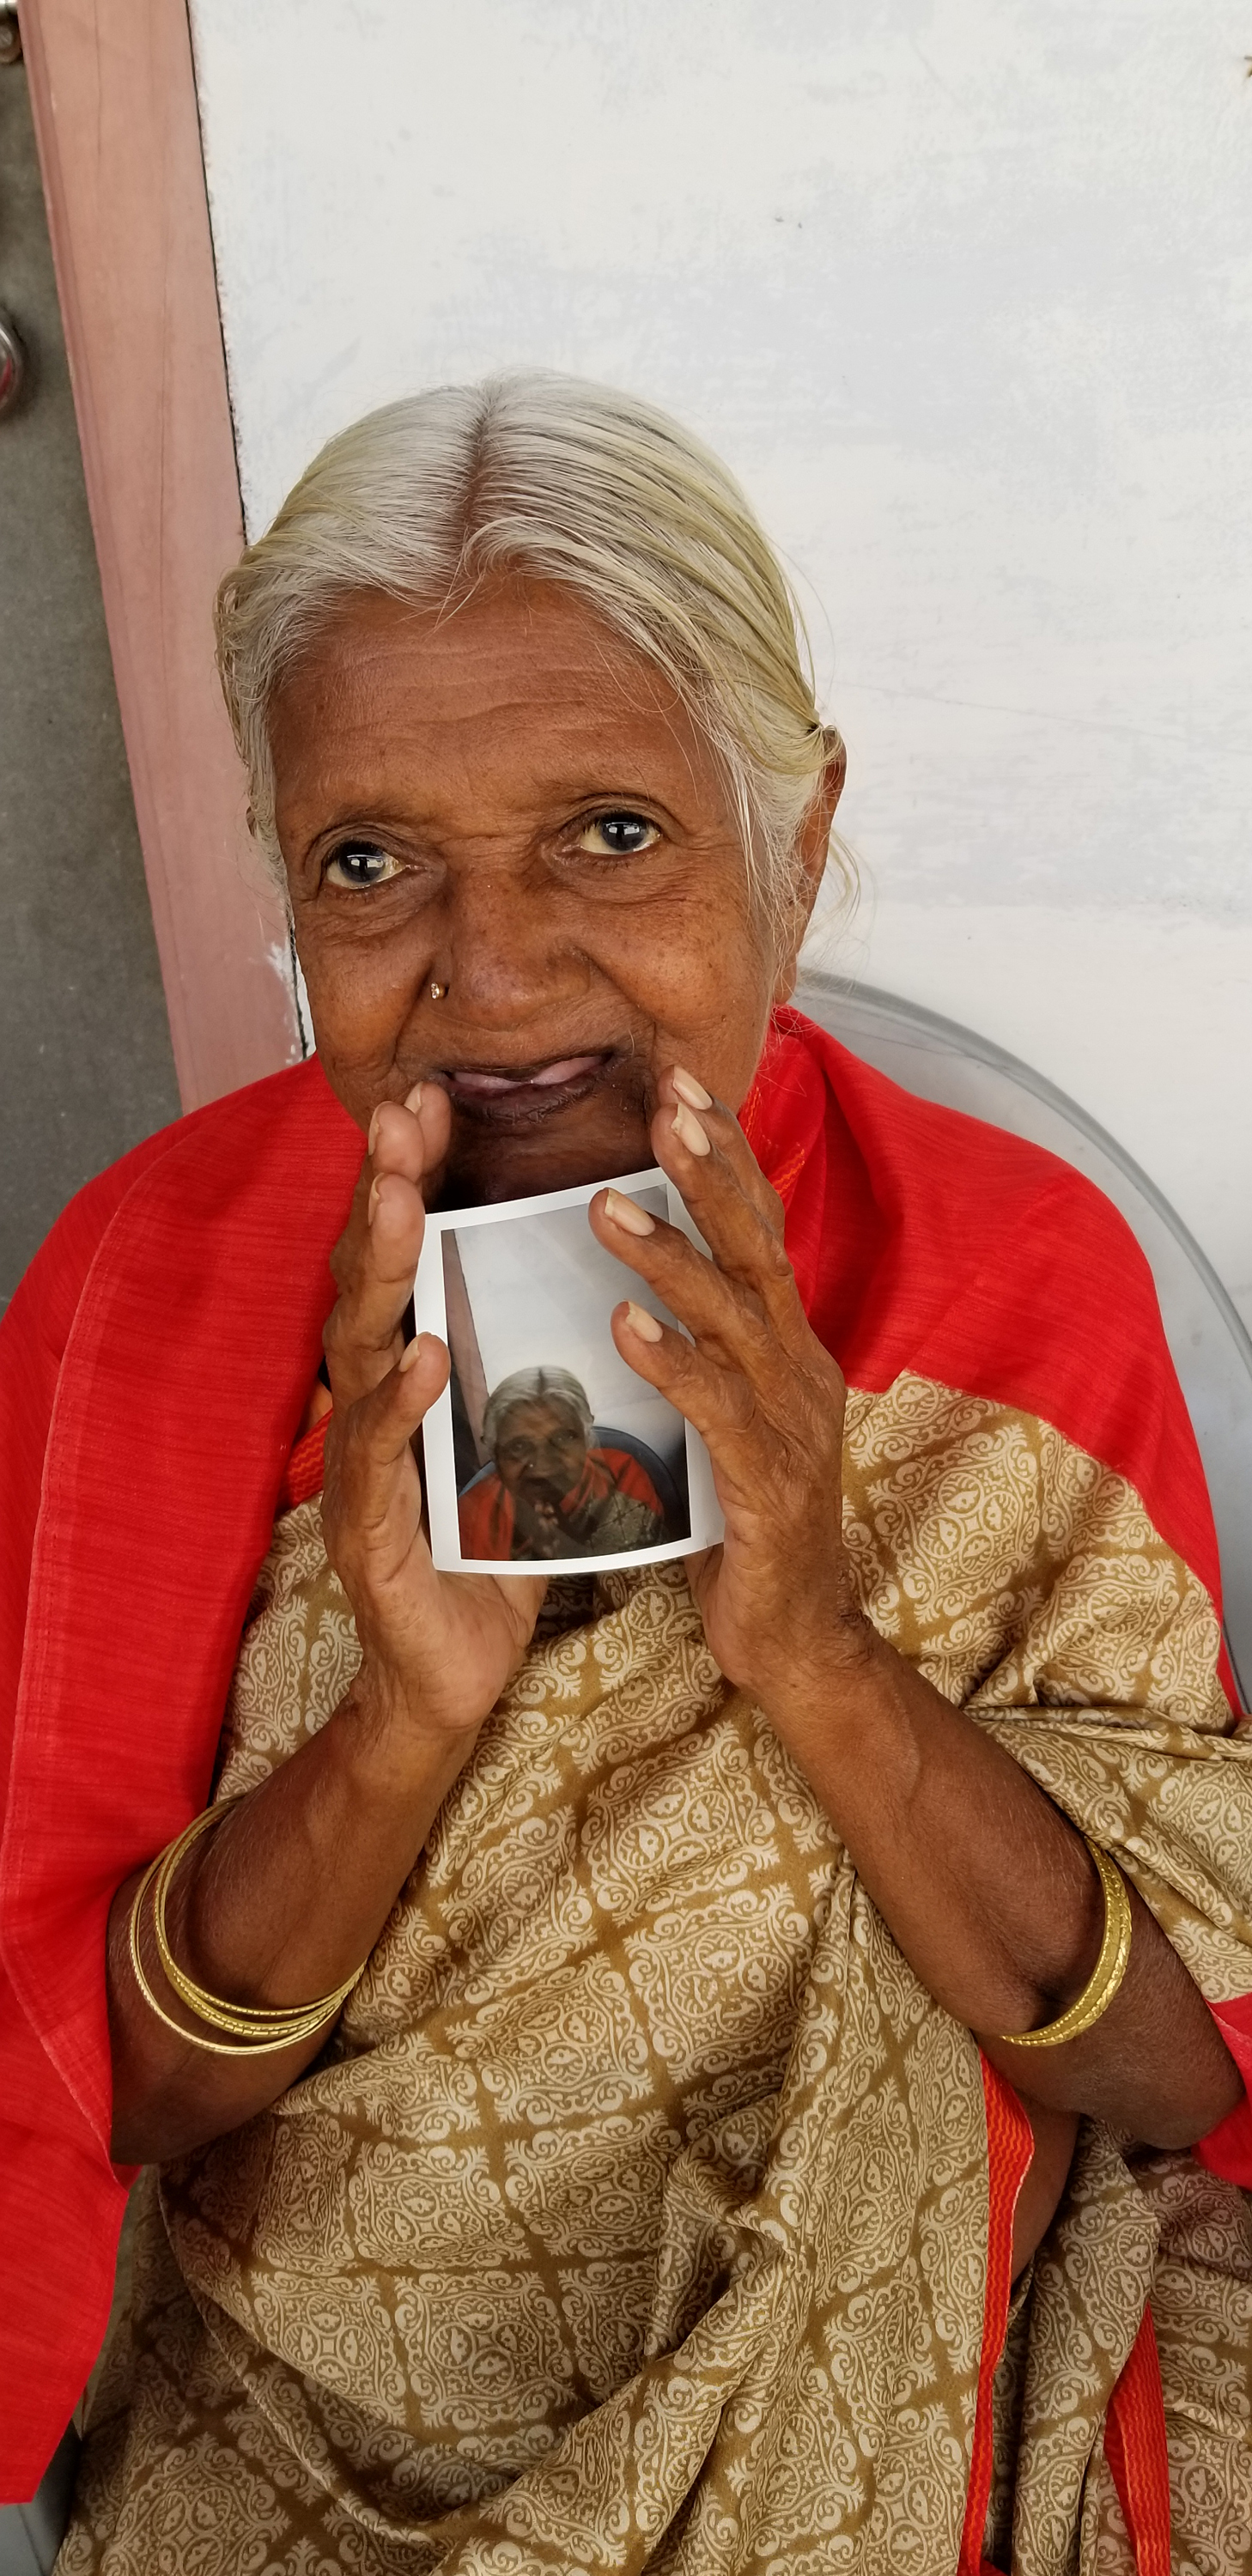 I gave Polaroids of the widows (and orphans). They loved it!